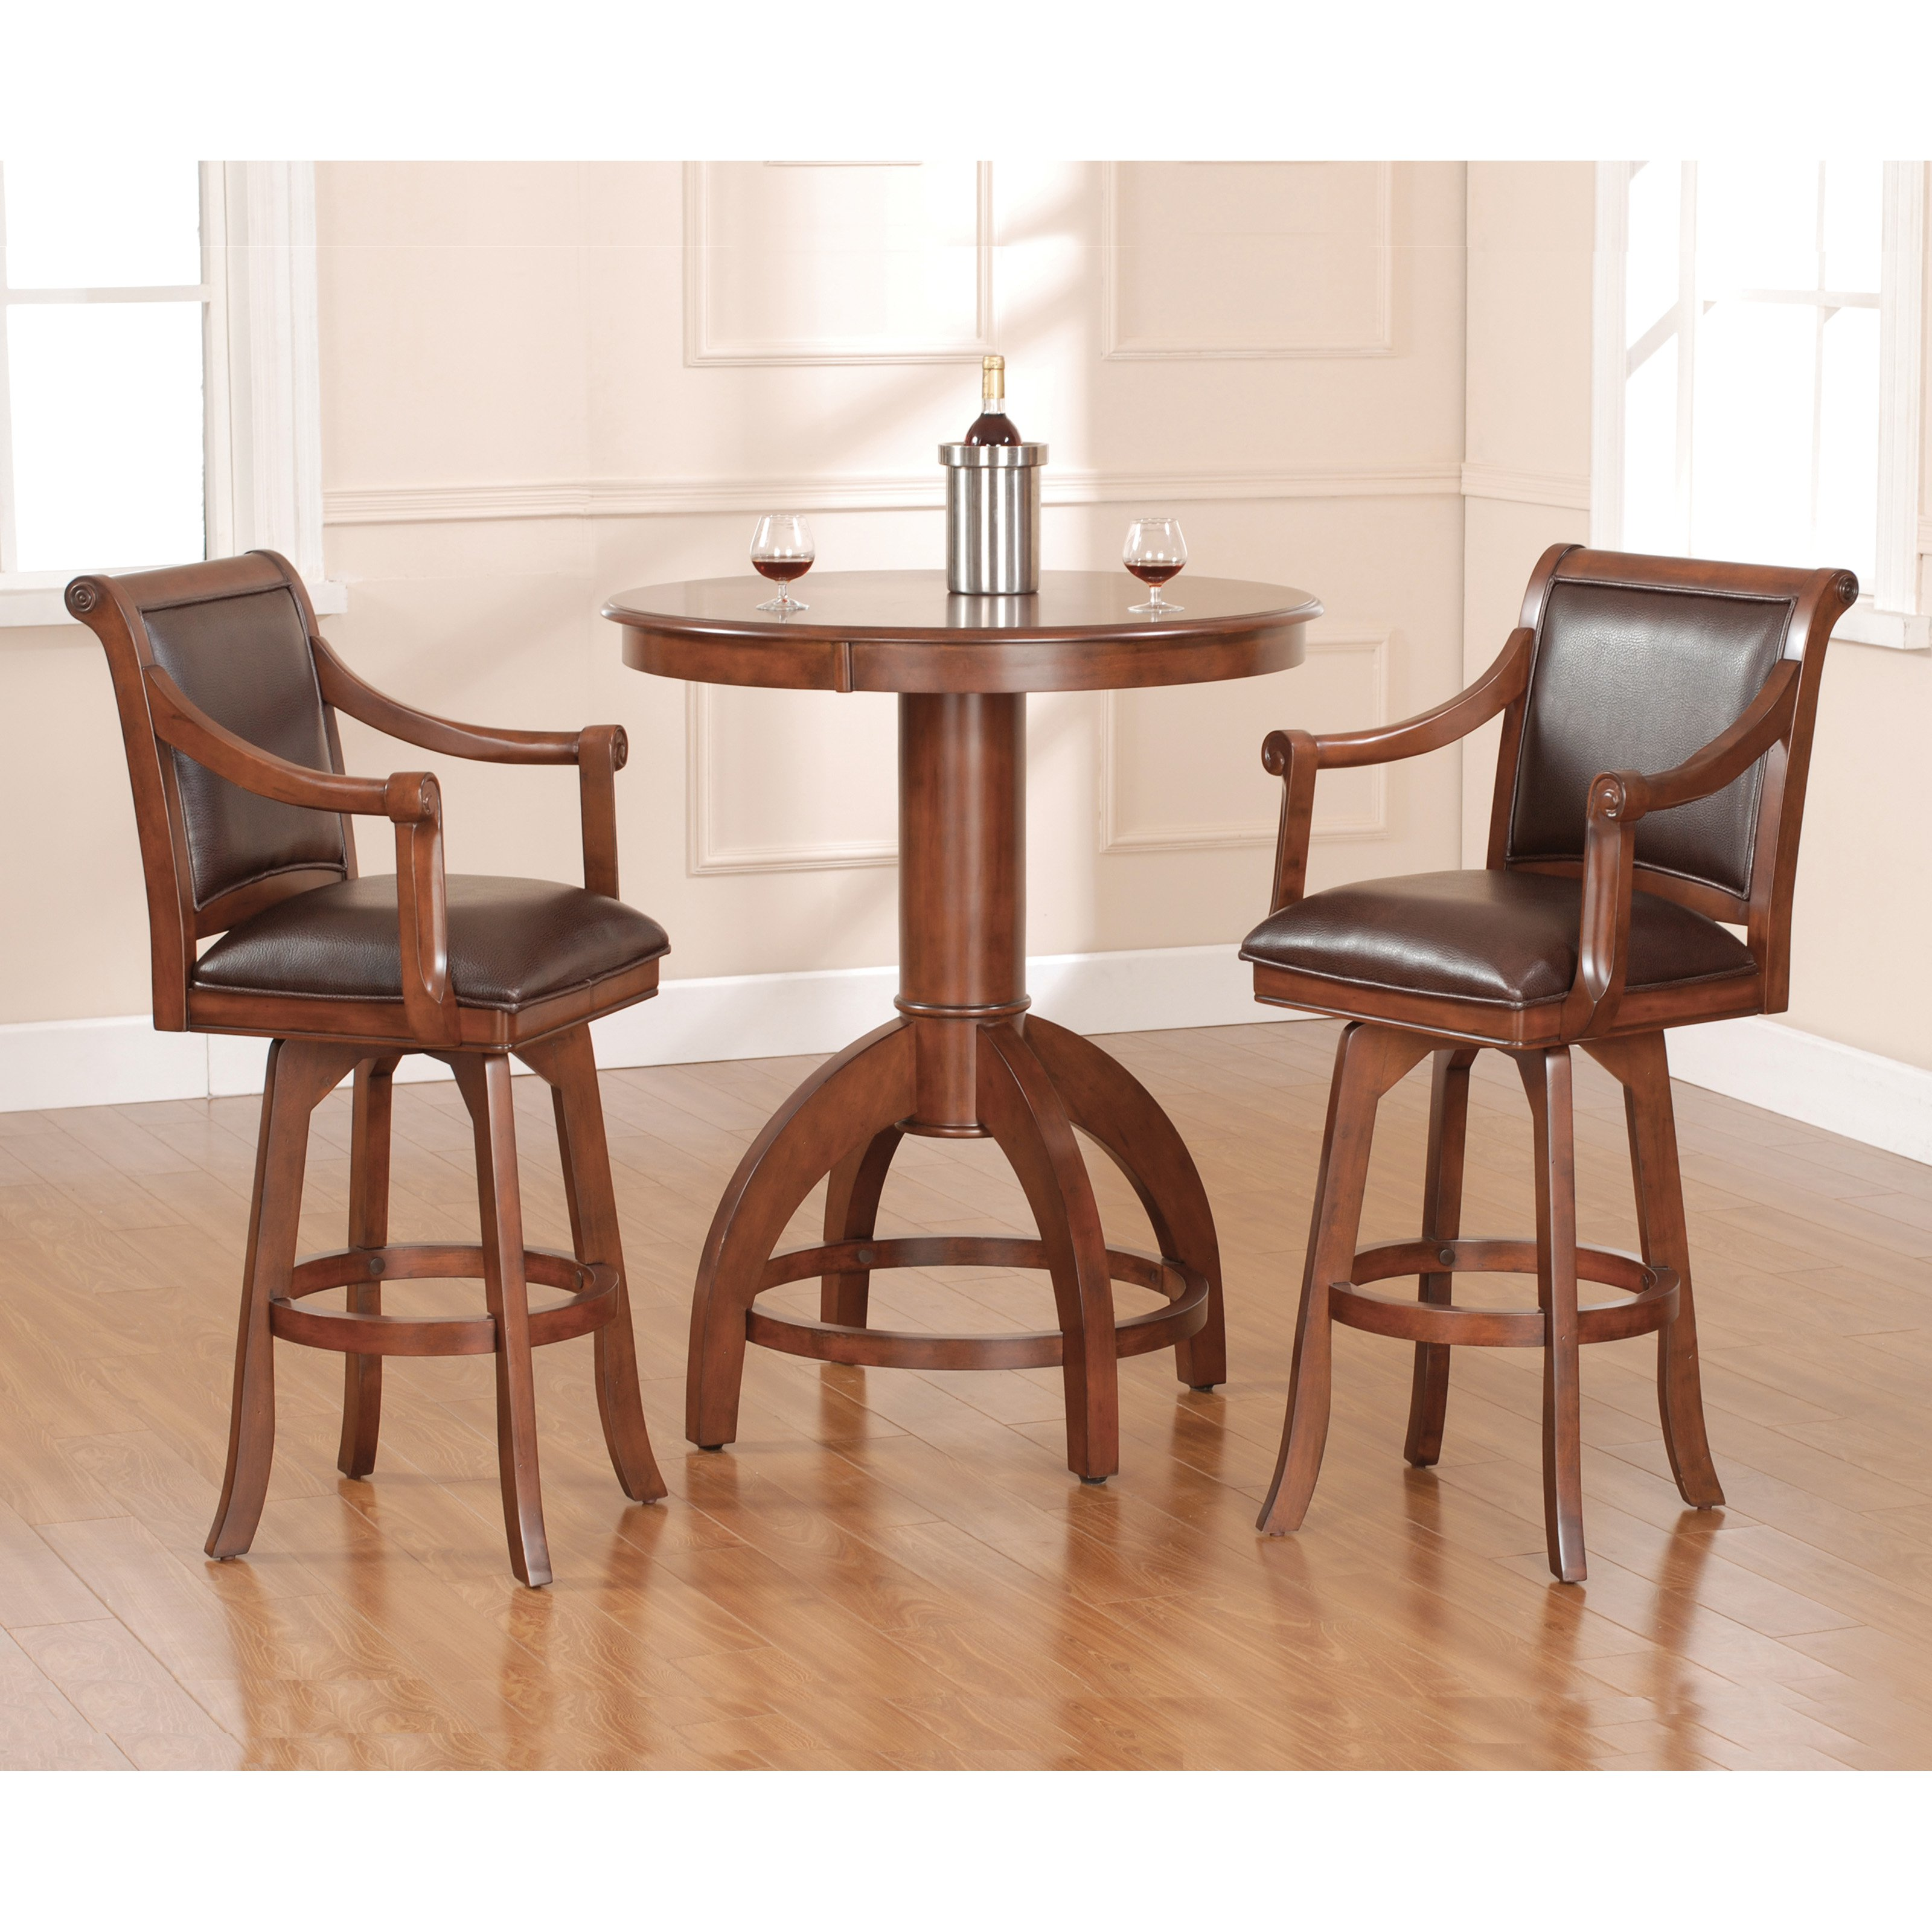 Hillsdale Palm Springs Bar Height Bistro Set by Hillsdale